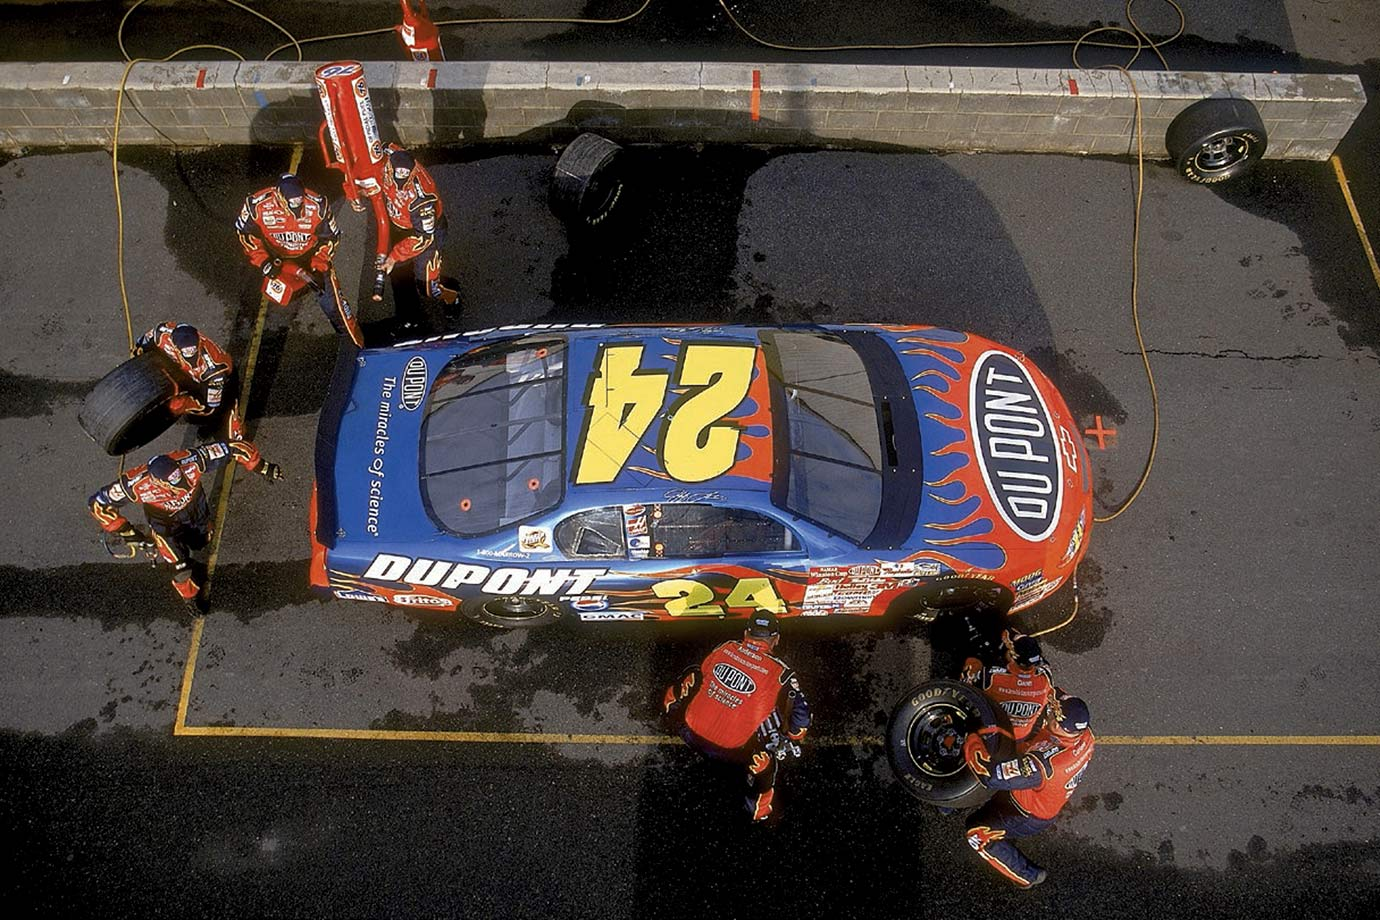 Jeff Gordon's pit crew practices at Hendrick Motorsports in Charlotte, N.C.